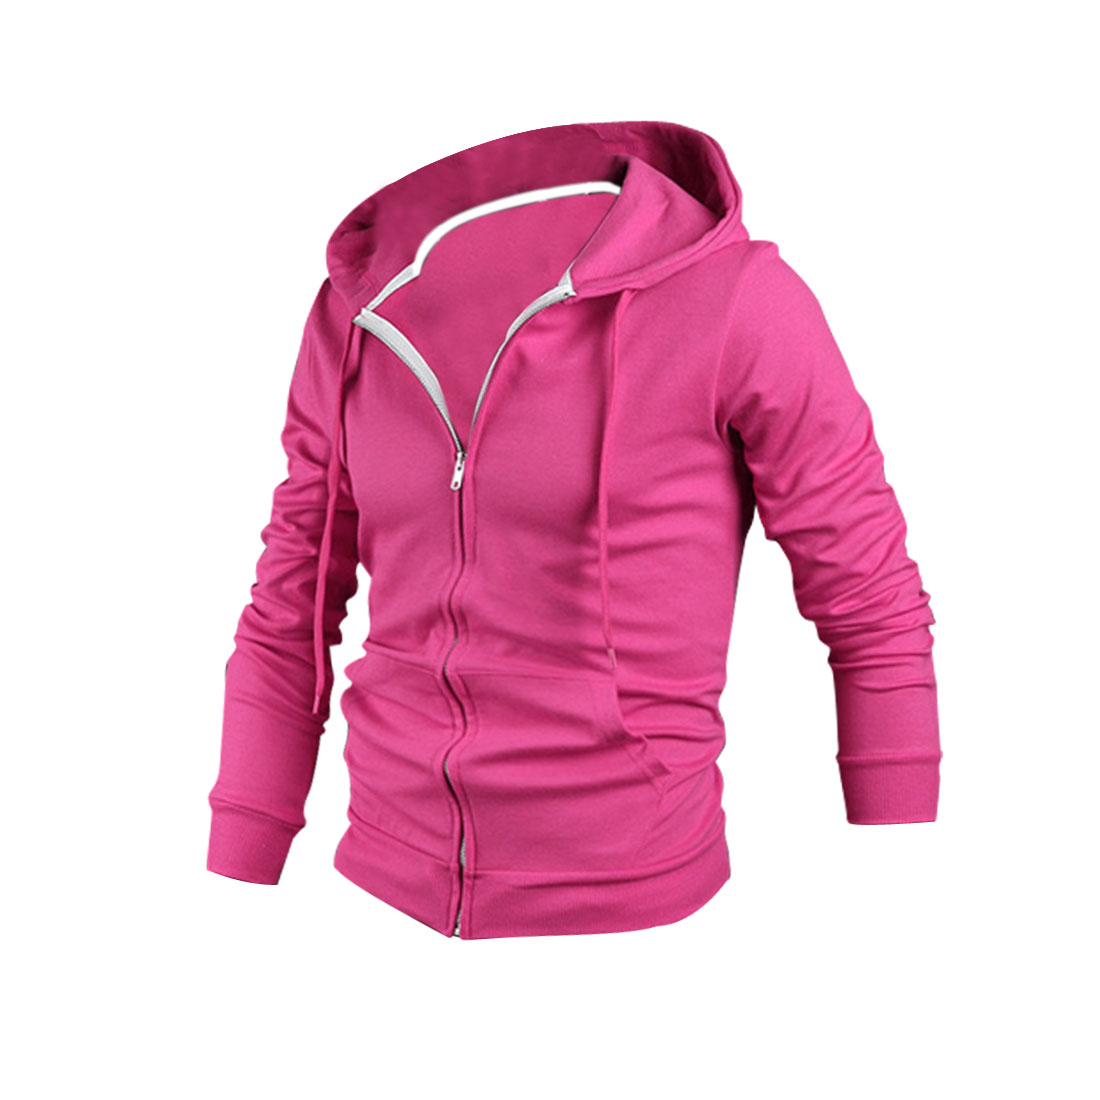 Men Zip Up Pockets Front Stretchy Hoodies Fuchsia M